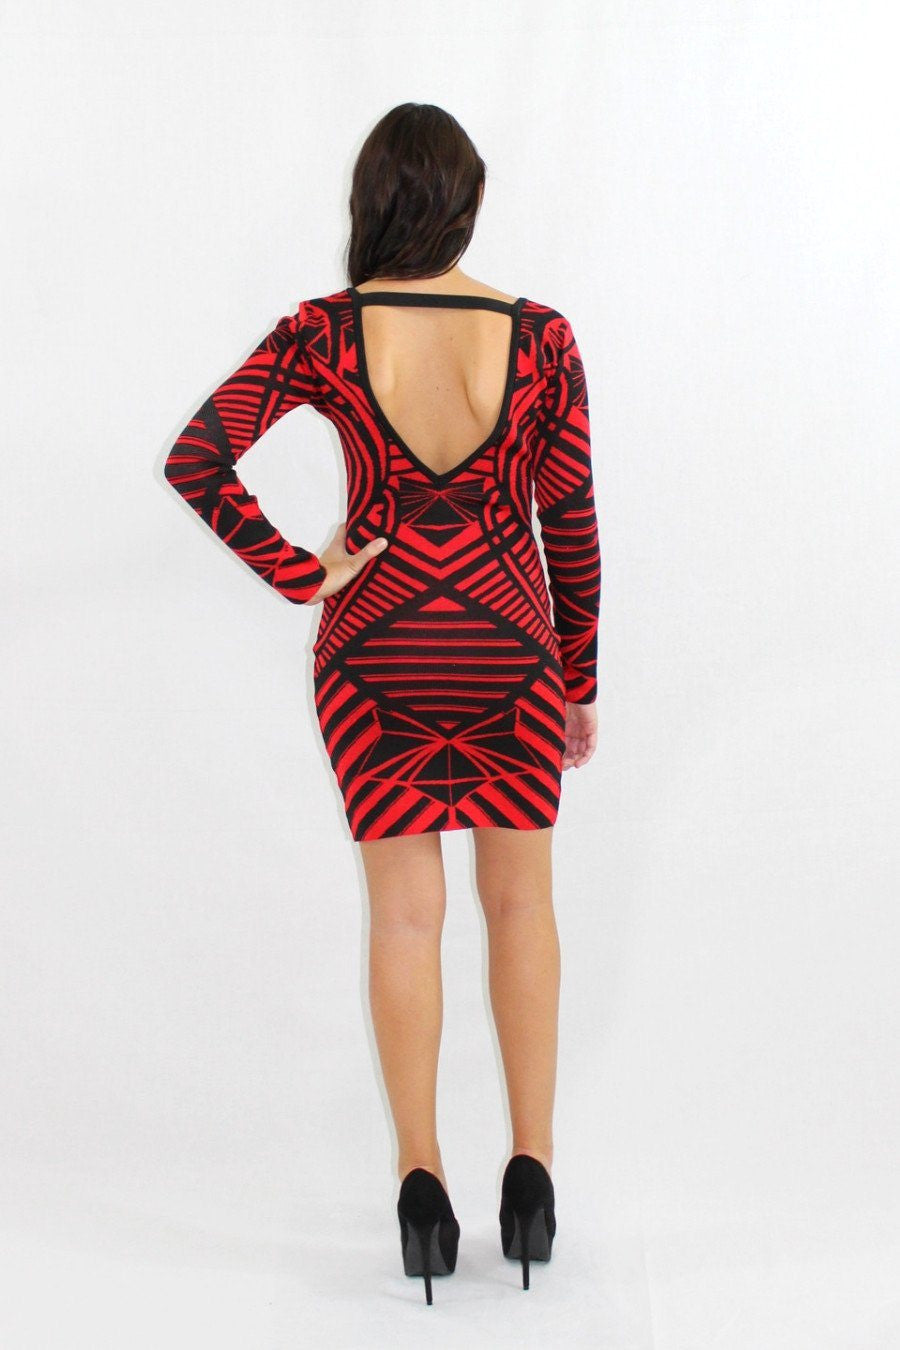 Banned From TV Red Bodycon Dress - The Laguna Room